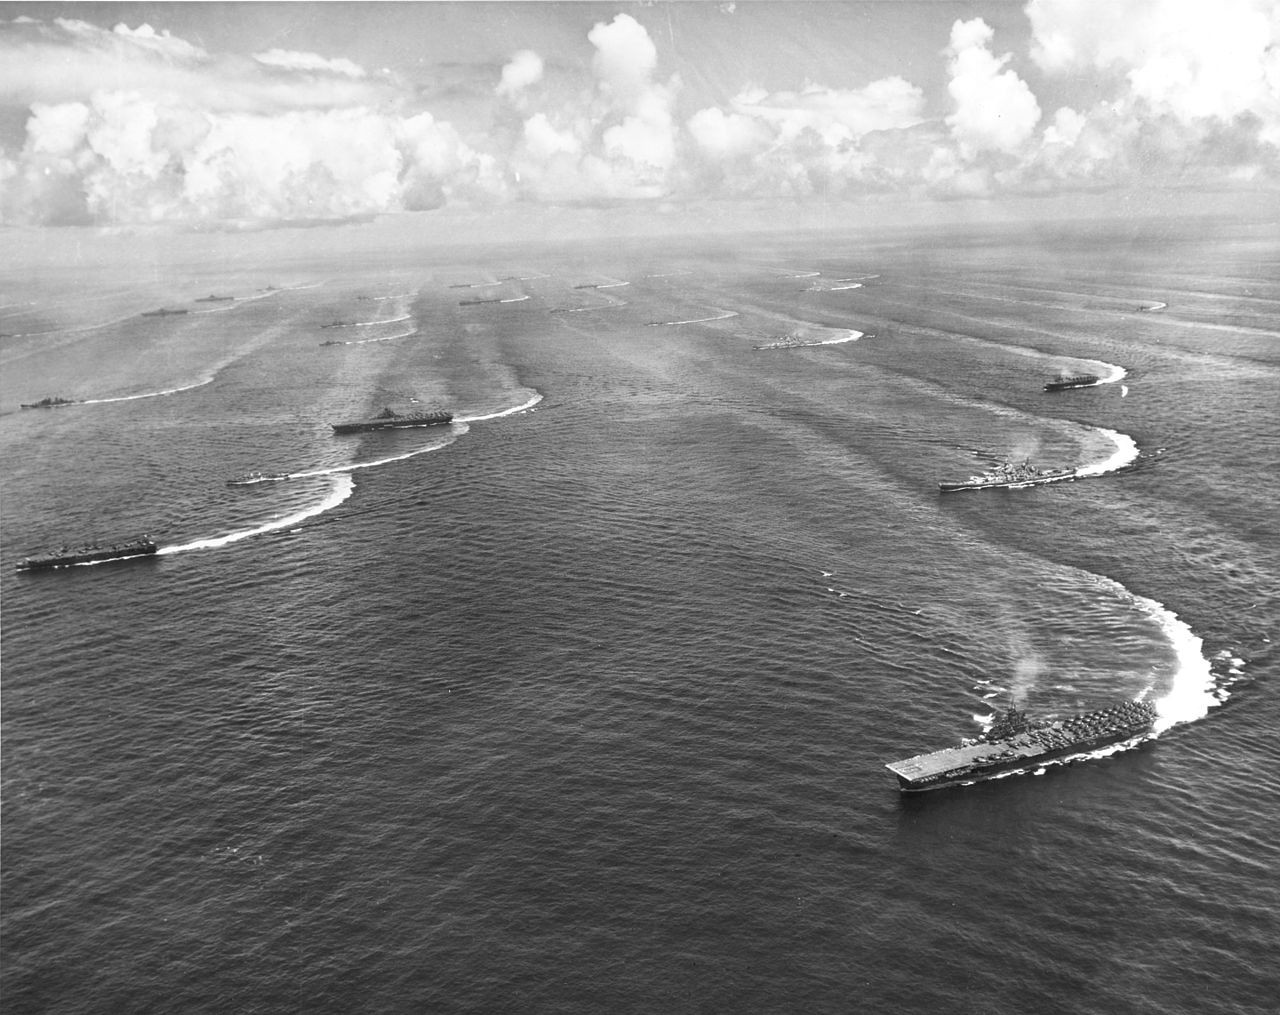 Task_Force_38_off_the_coast_of_Japan_1945 4 essex class, 4 indenpendance class.jpg